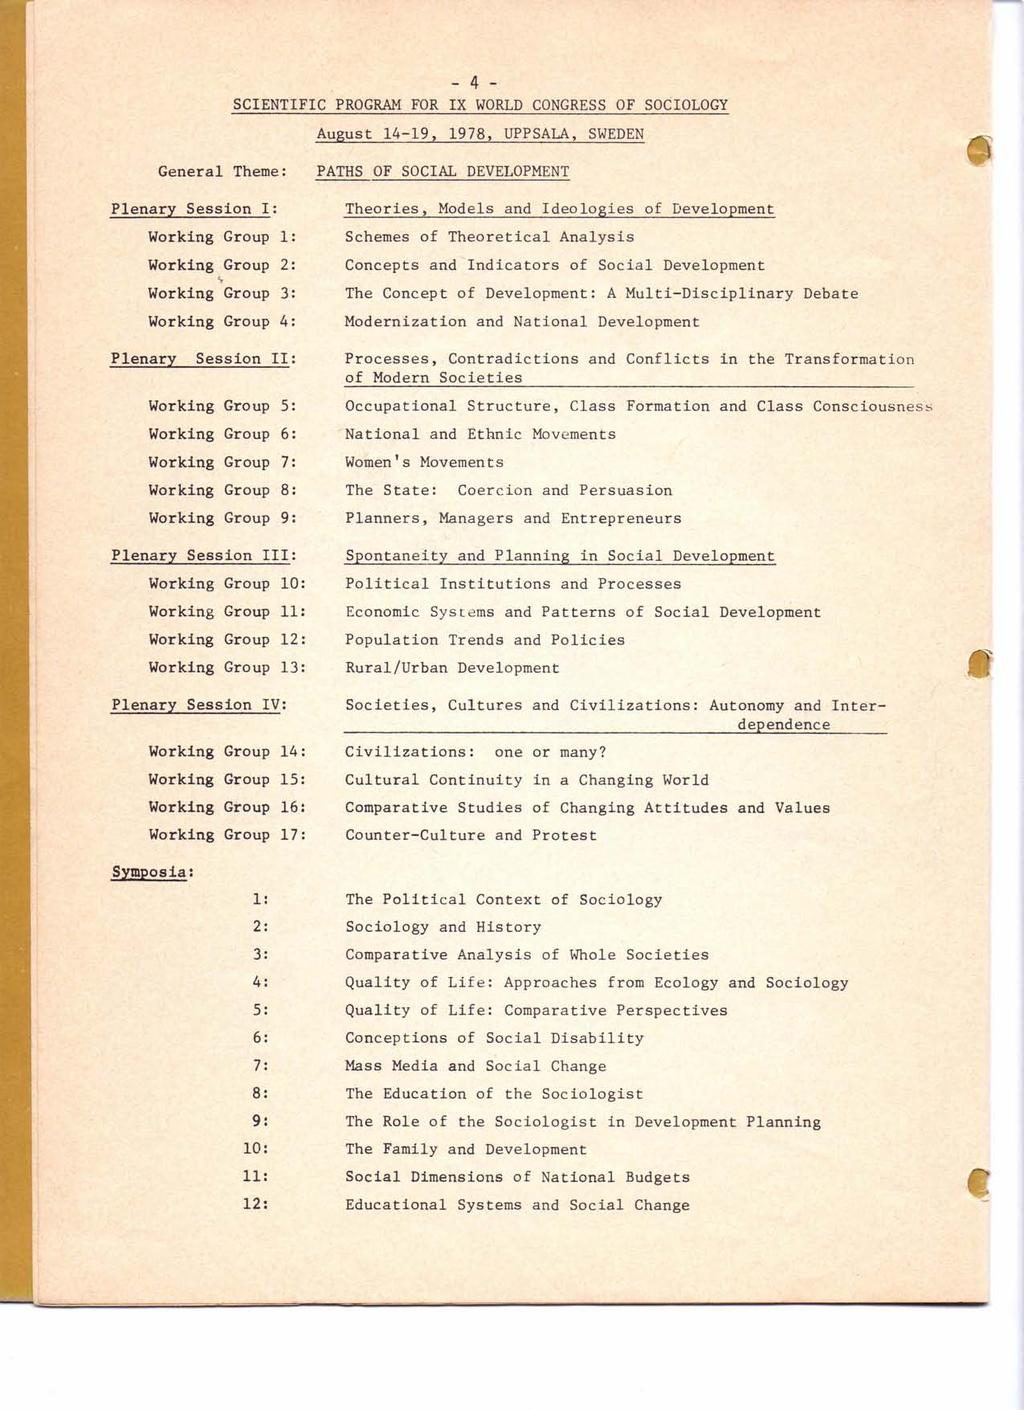 - 4 - SCIENTIFIC PROGRAM FOR IX WORLD CONGRESS OF SOCIOLOGY August 14-19, 1978, UPPSALA, SWEDEN General Theme: PATHS OF SOCIAL DEVELOPMENT Plenary Session 1: Theories, Models and Ideologies of